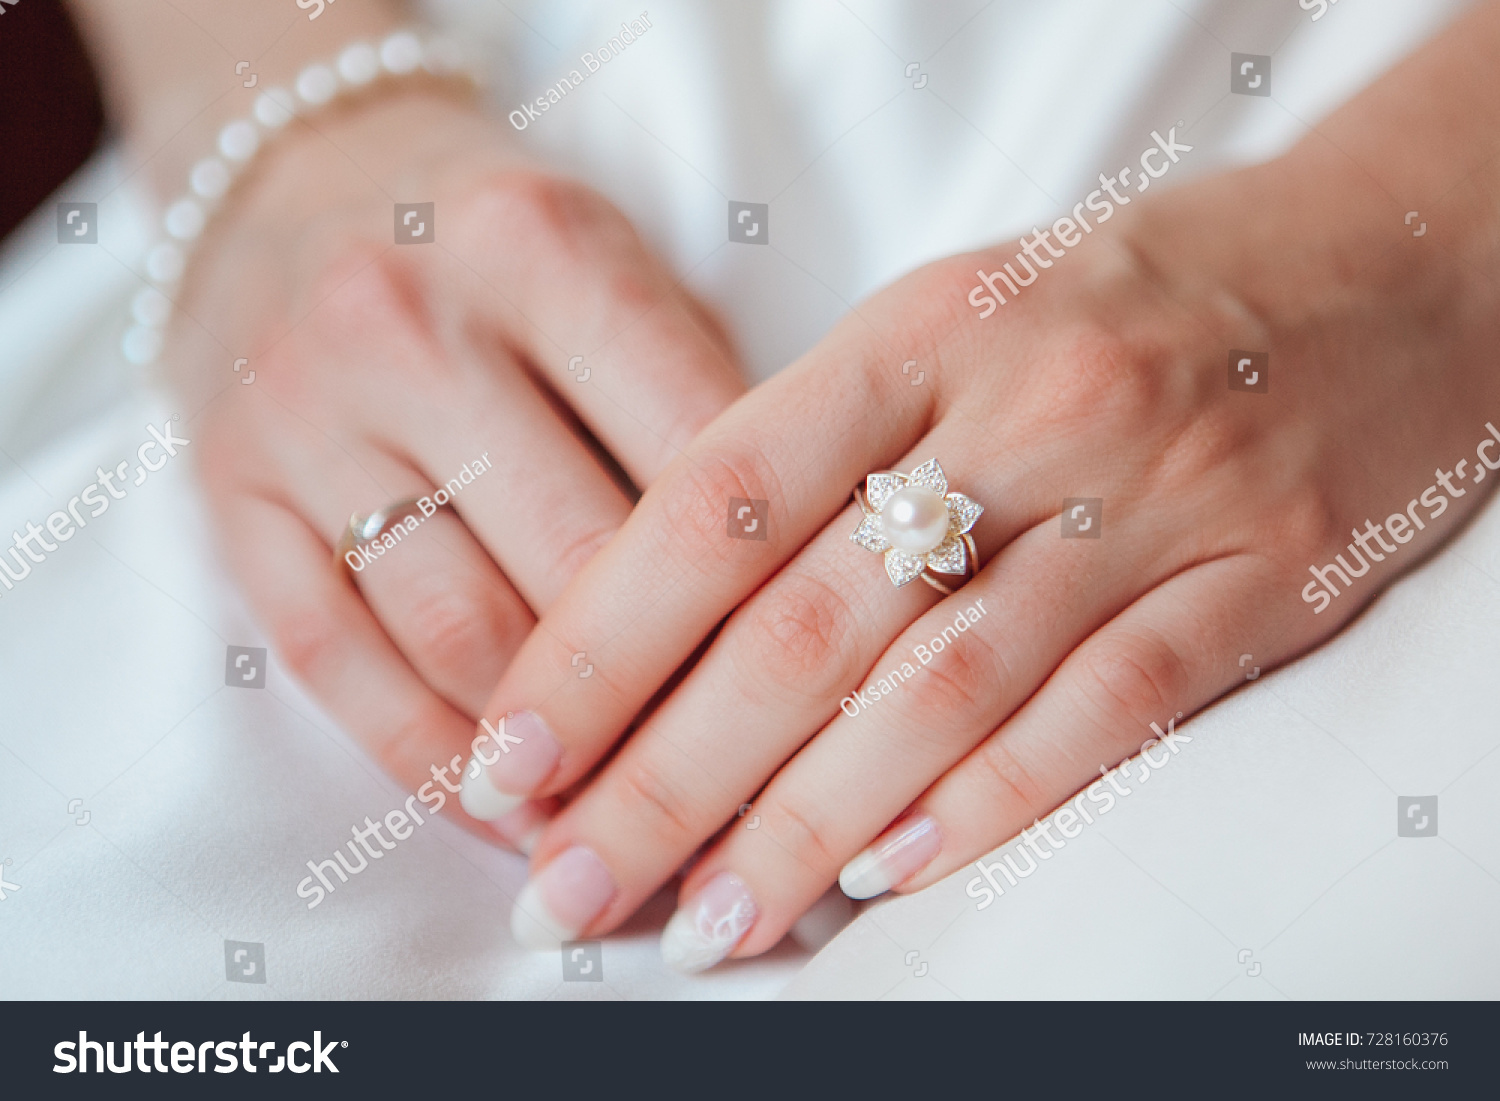 an image of situation of inserting engagement ring into a finger ...